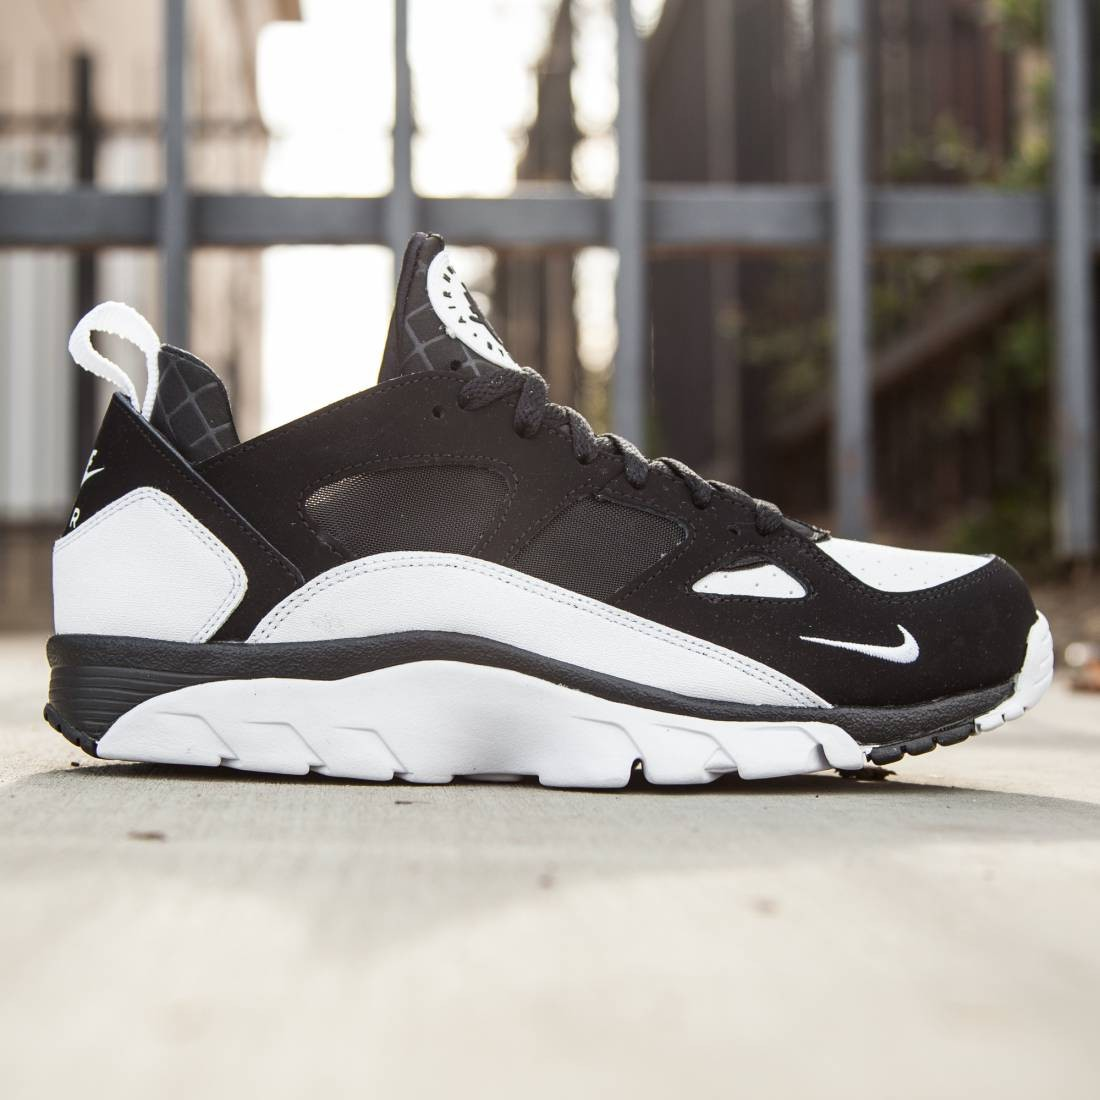 reputable site 14b0f e29f2 Nike Mens Air Trainer Huarache Low black white black